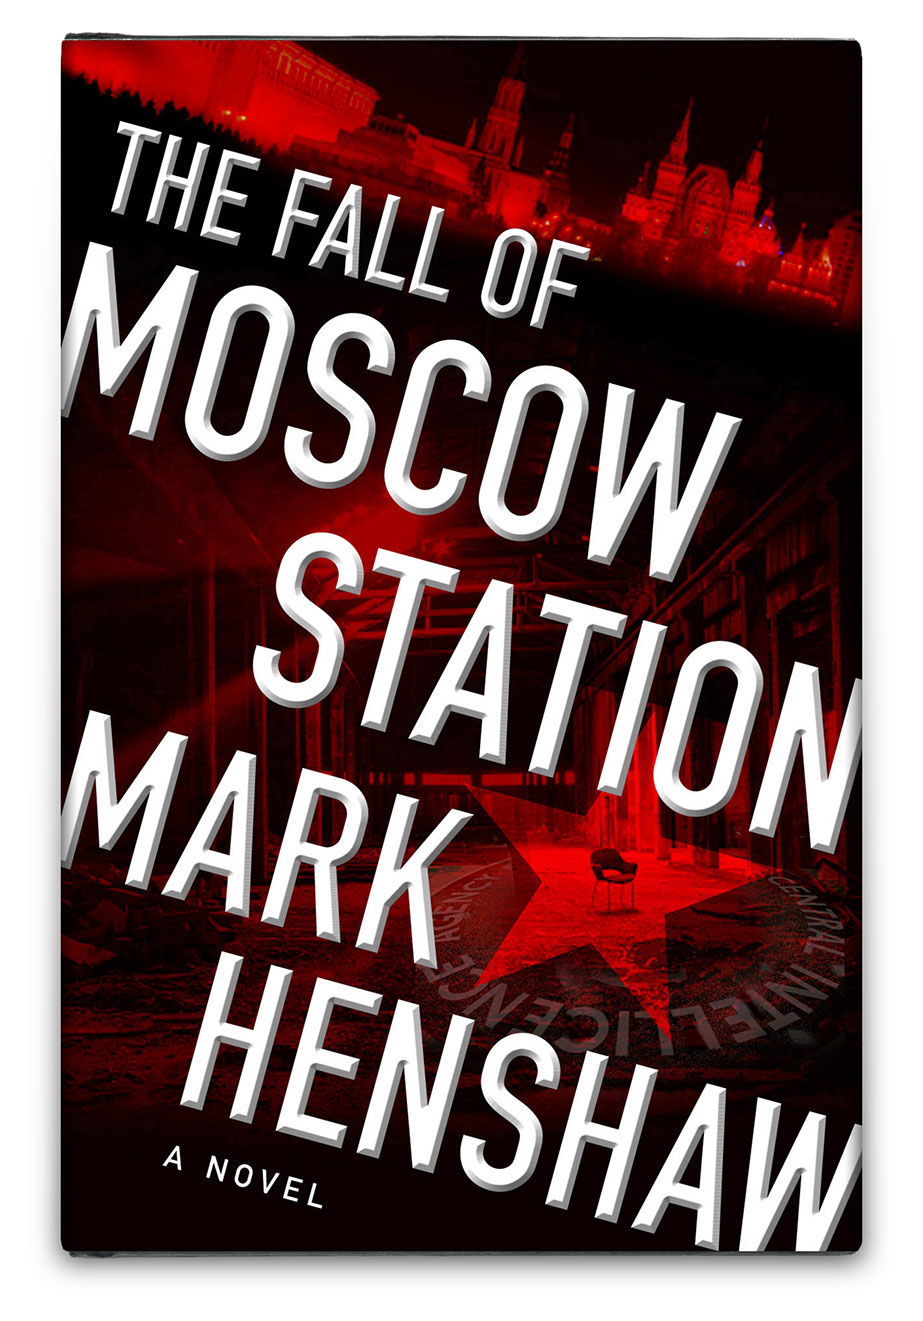 THE FALL OF MOSCOW STATION (comp)